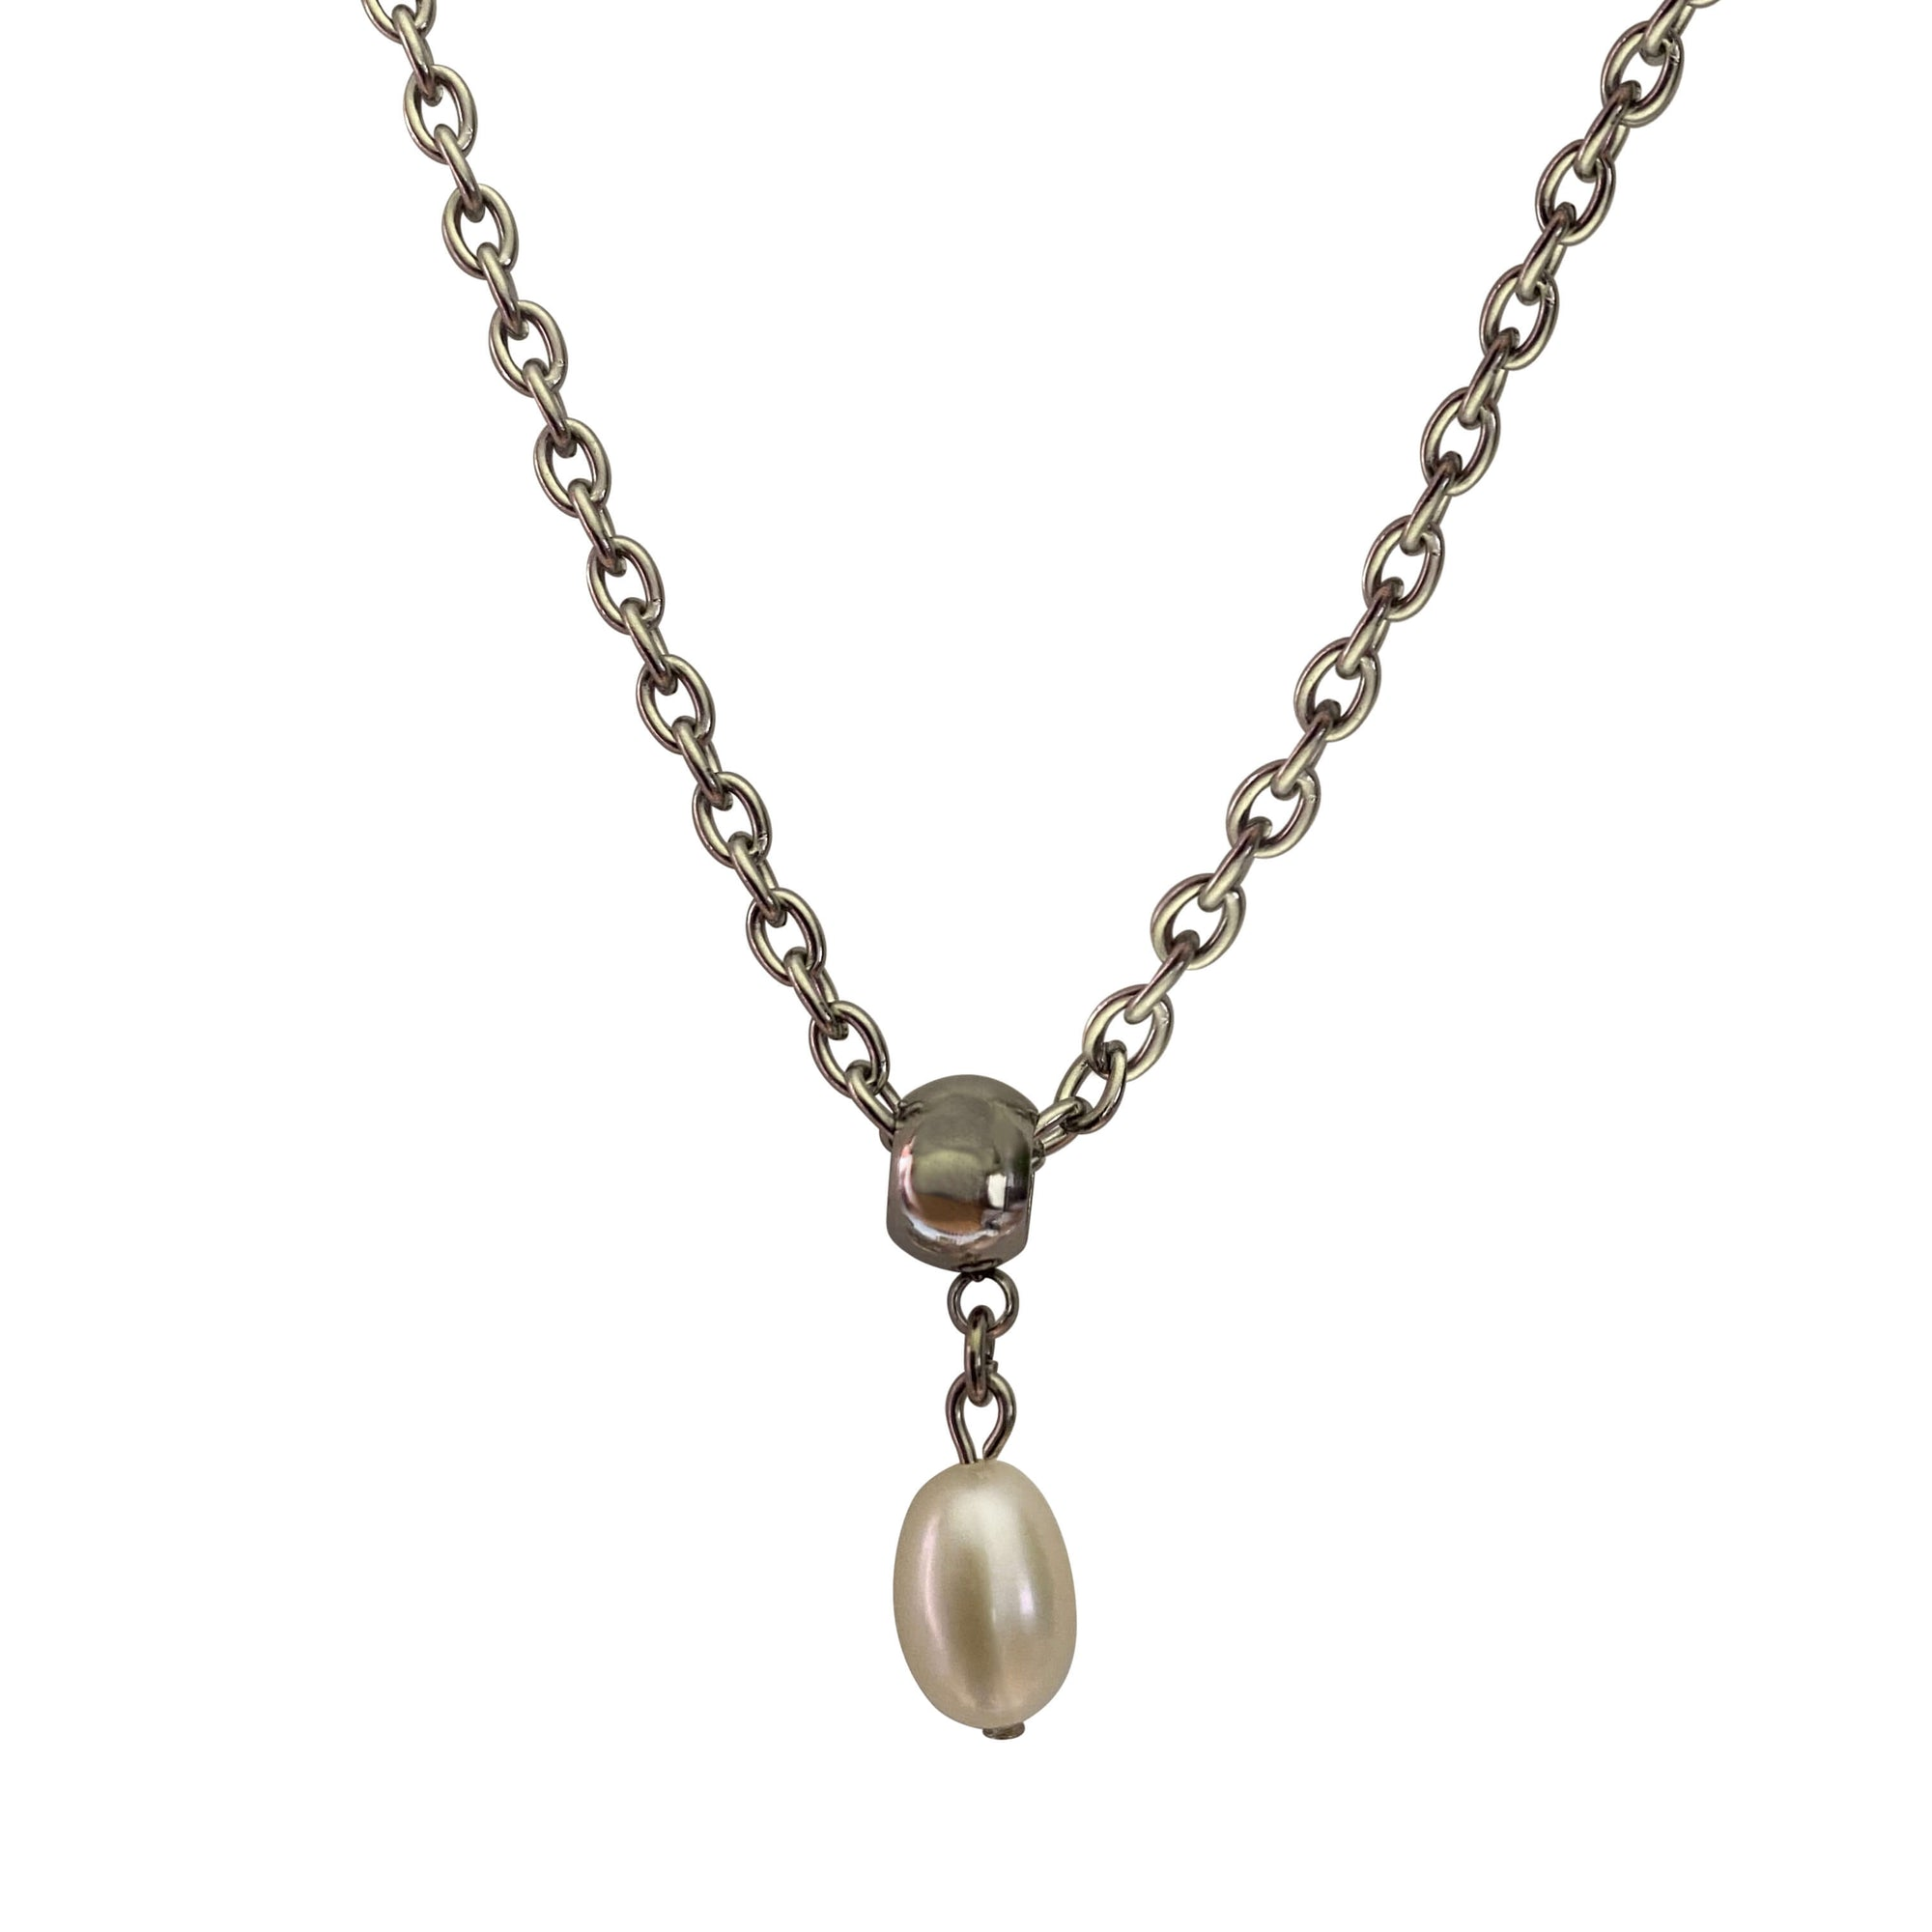 Freshwater Pearl Drop Pearl Necklace with Lobster Clasp-Necklaces- Creative Jewelry by Marcia